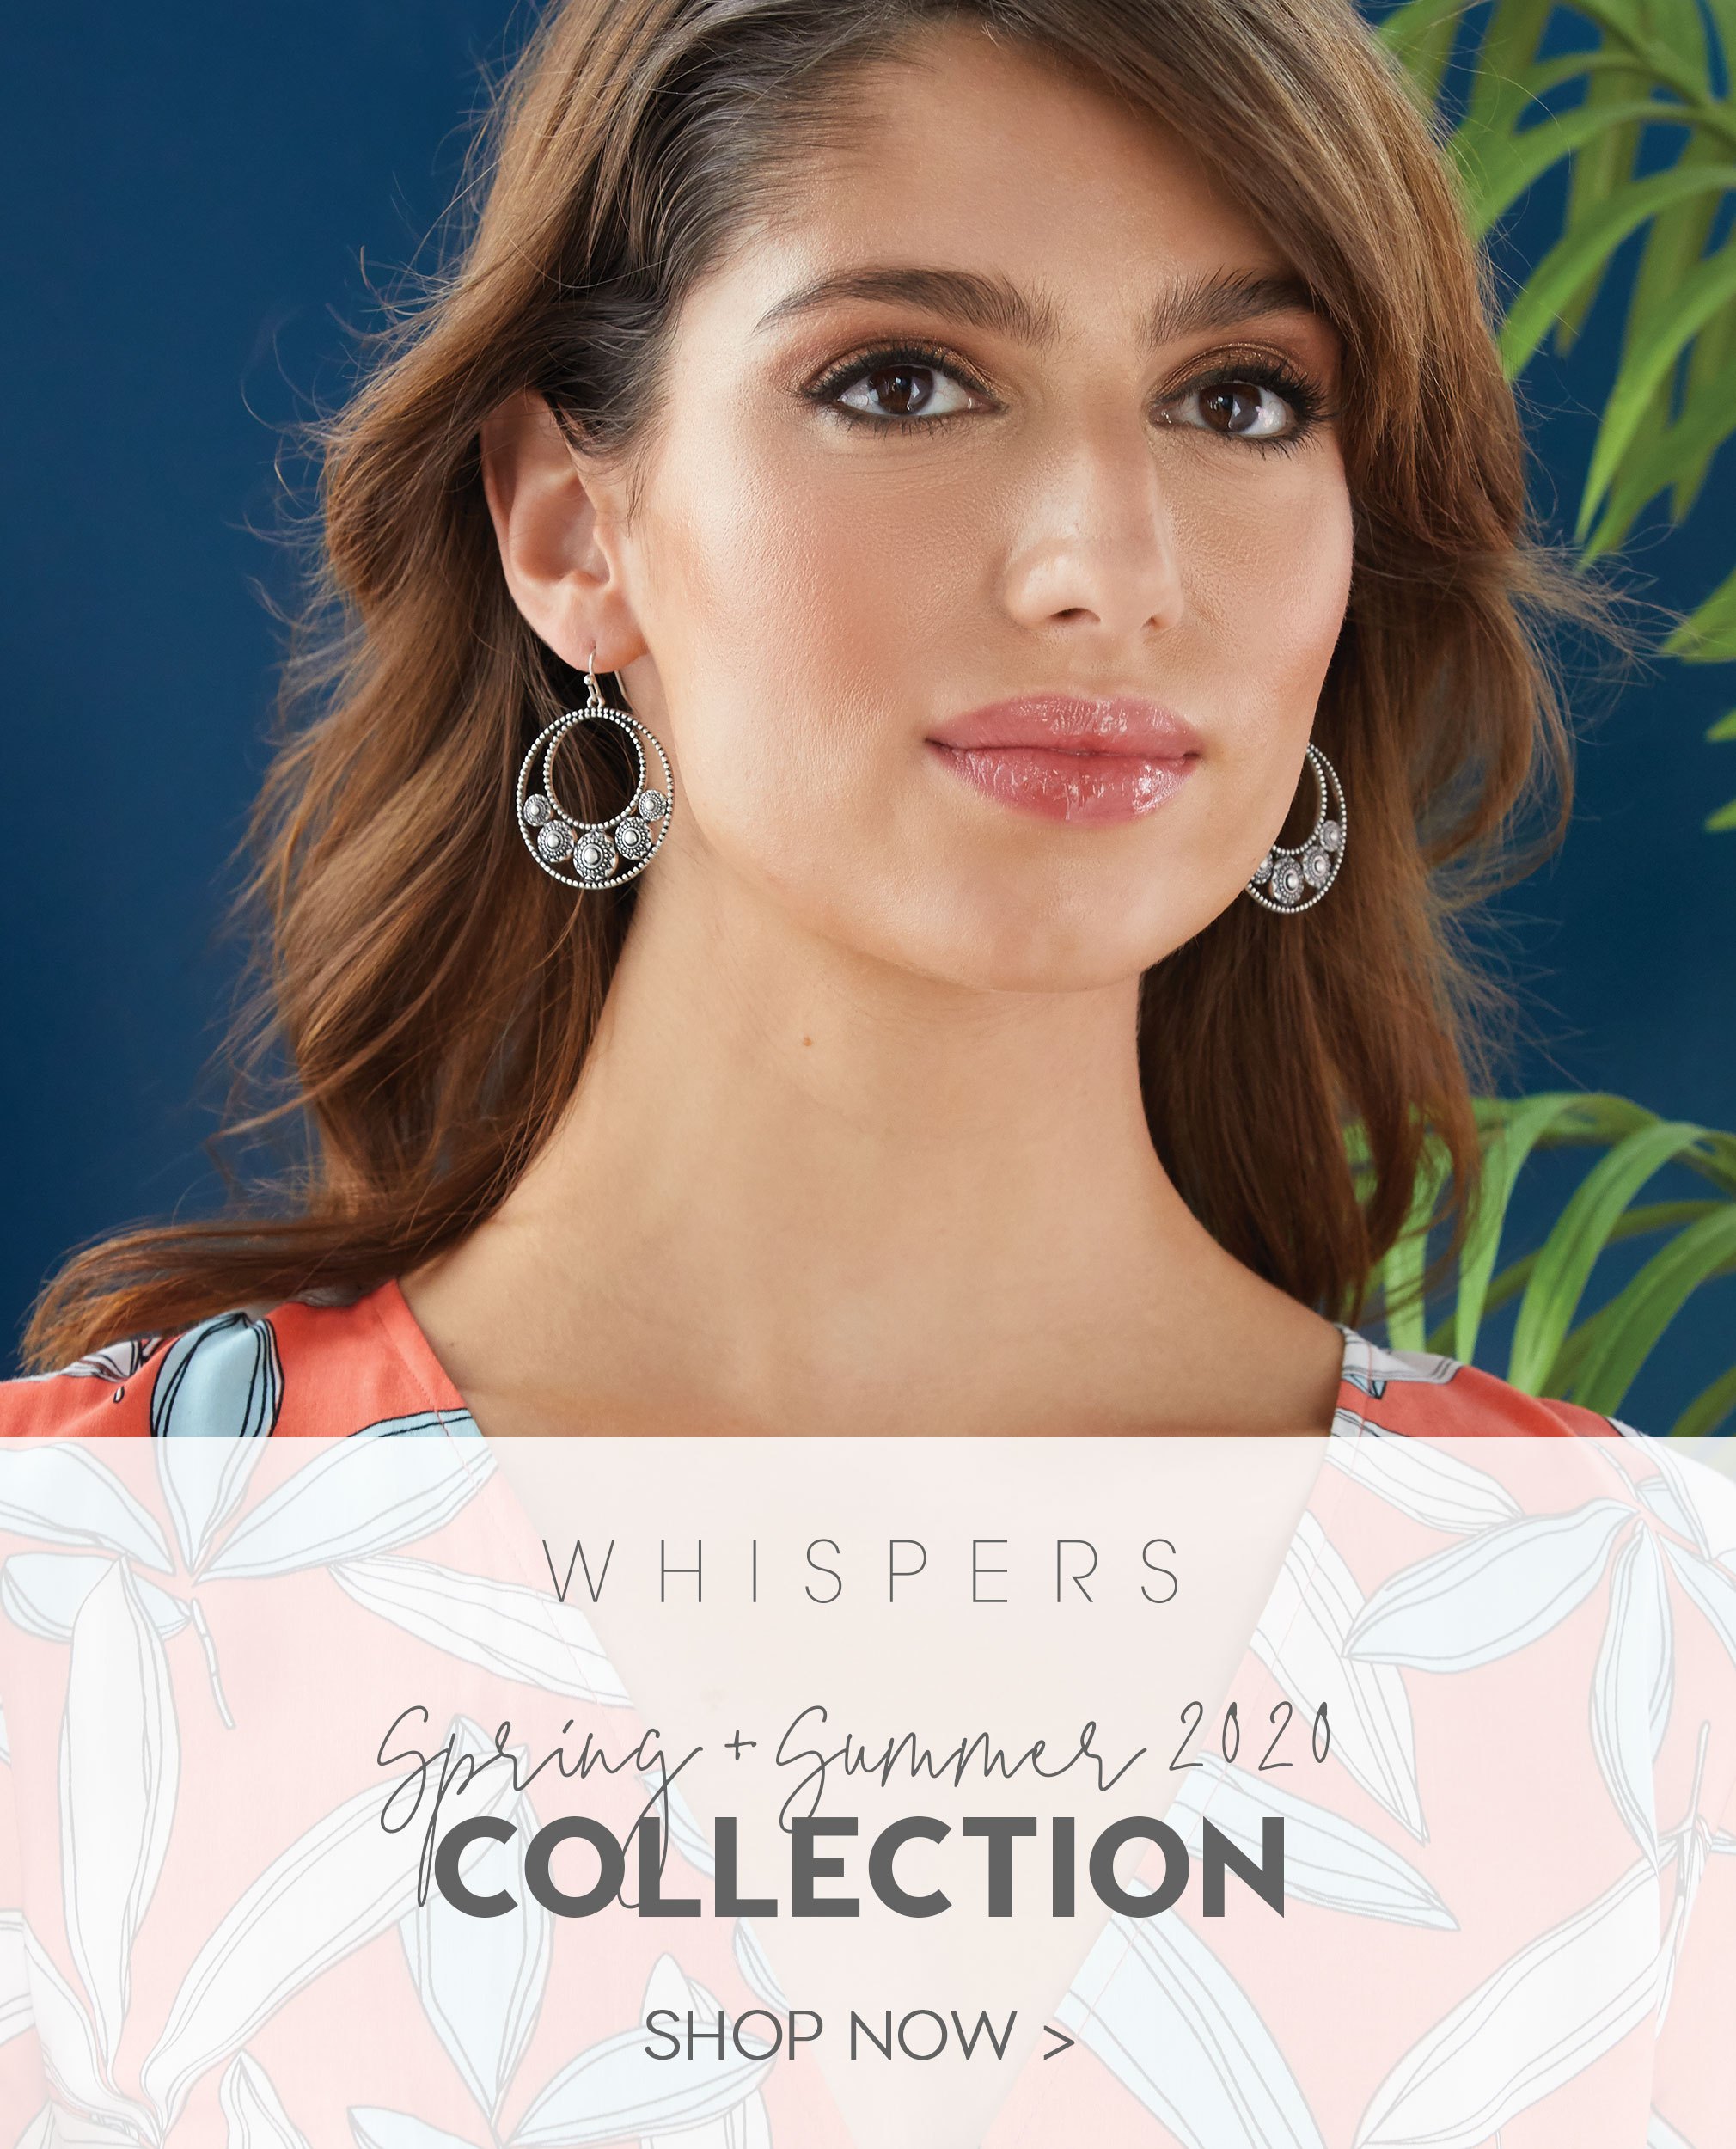 New Whispers Collection